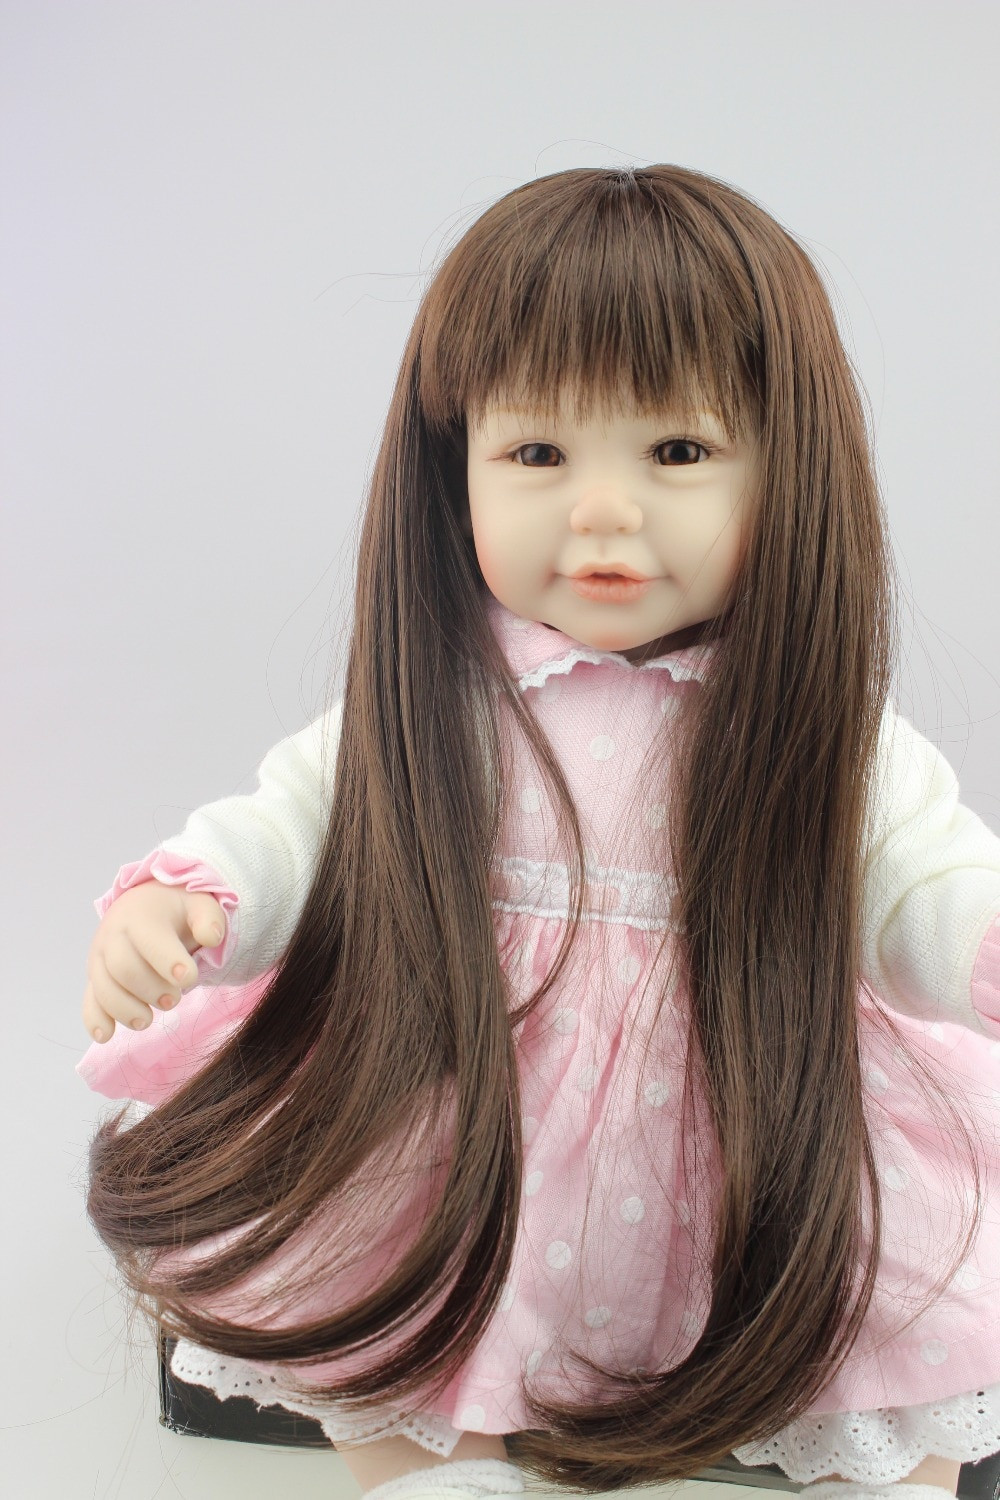 Baby Doll With Long Hair  Aliexpress Buy 2015 NEW design Reborn toddler girl